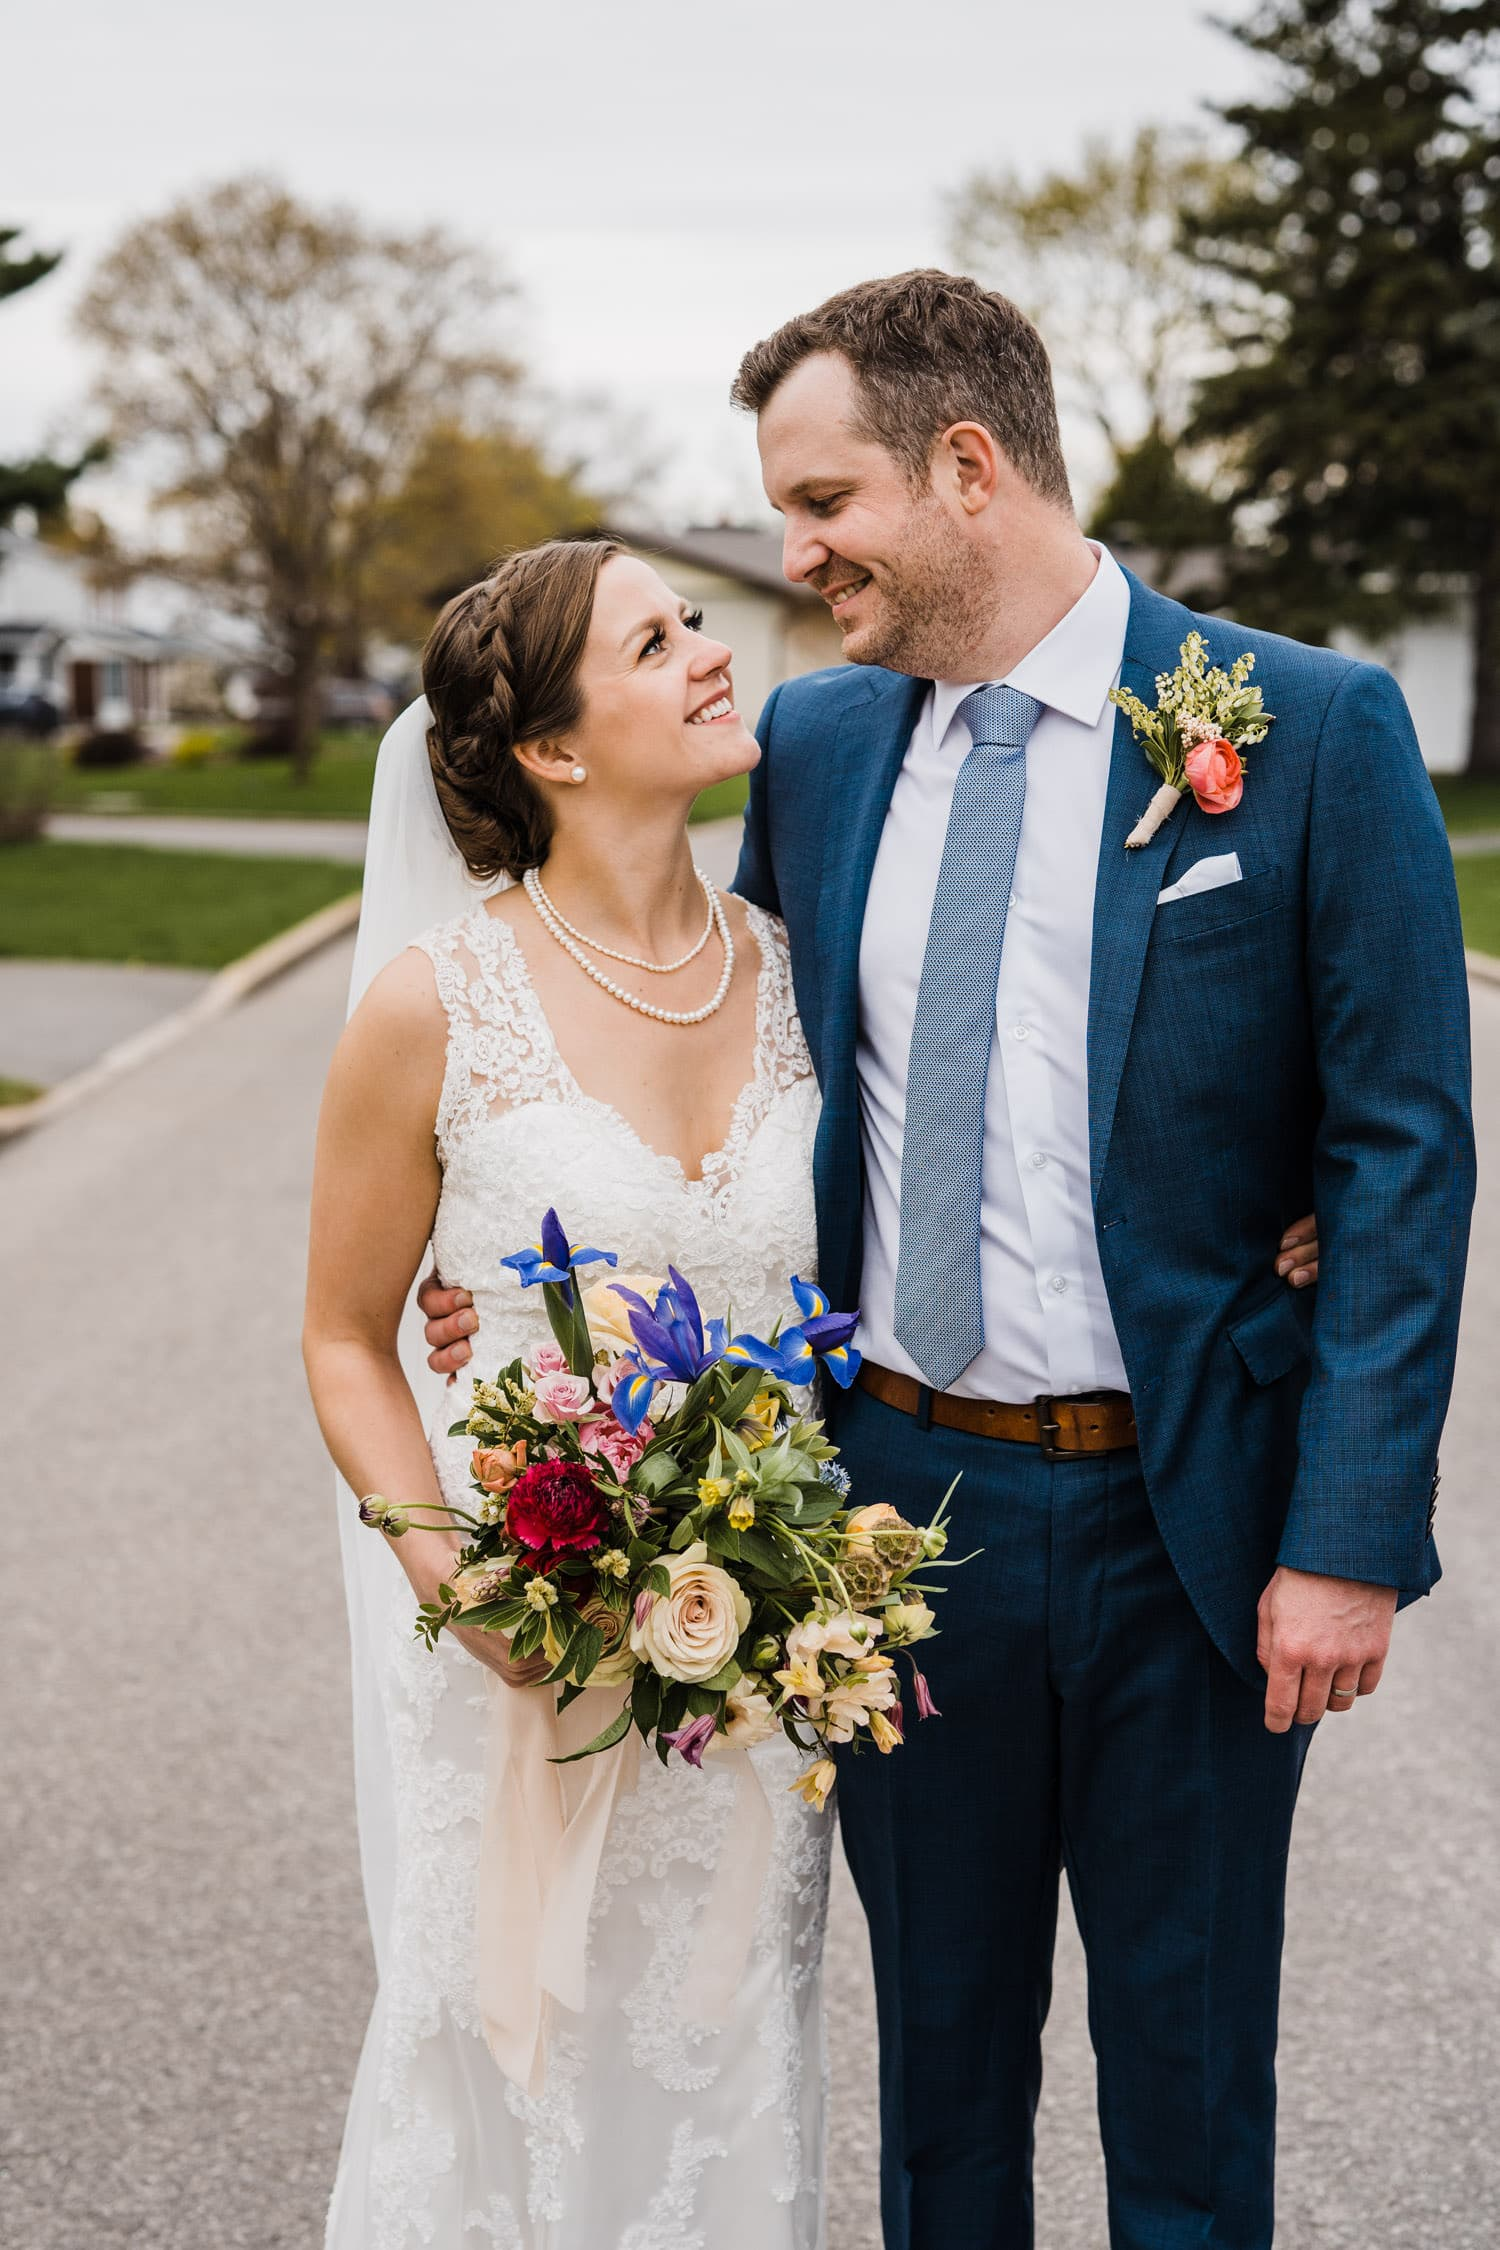 couple pose in the street after their backyard wedding ceremony